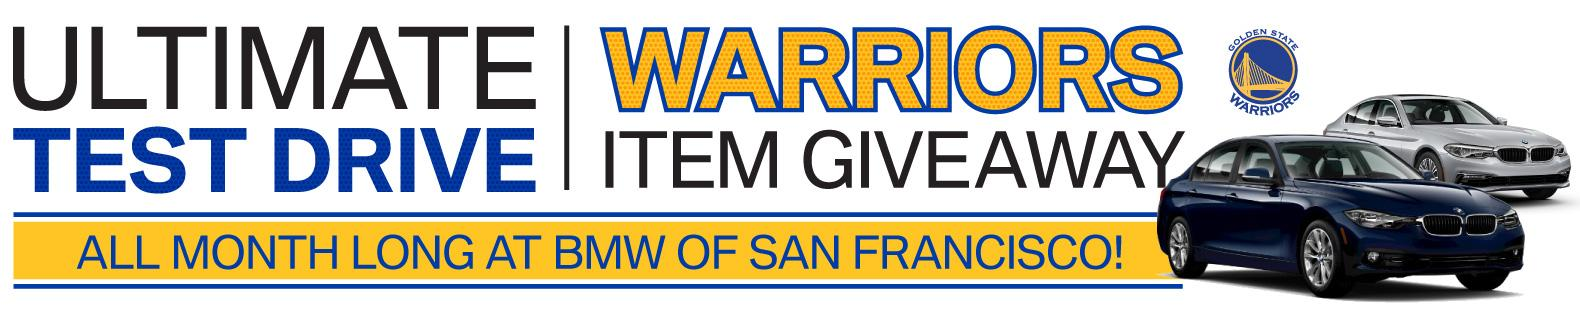 Ultimate Test Drive Warriors Item Giveaway